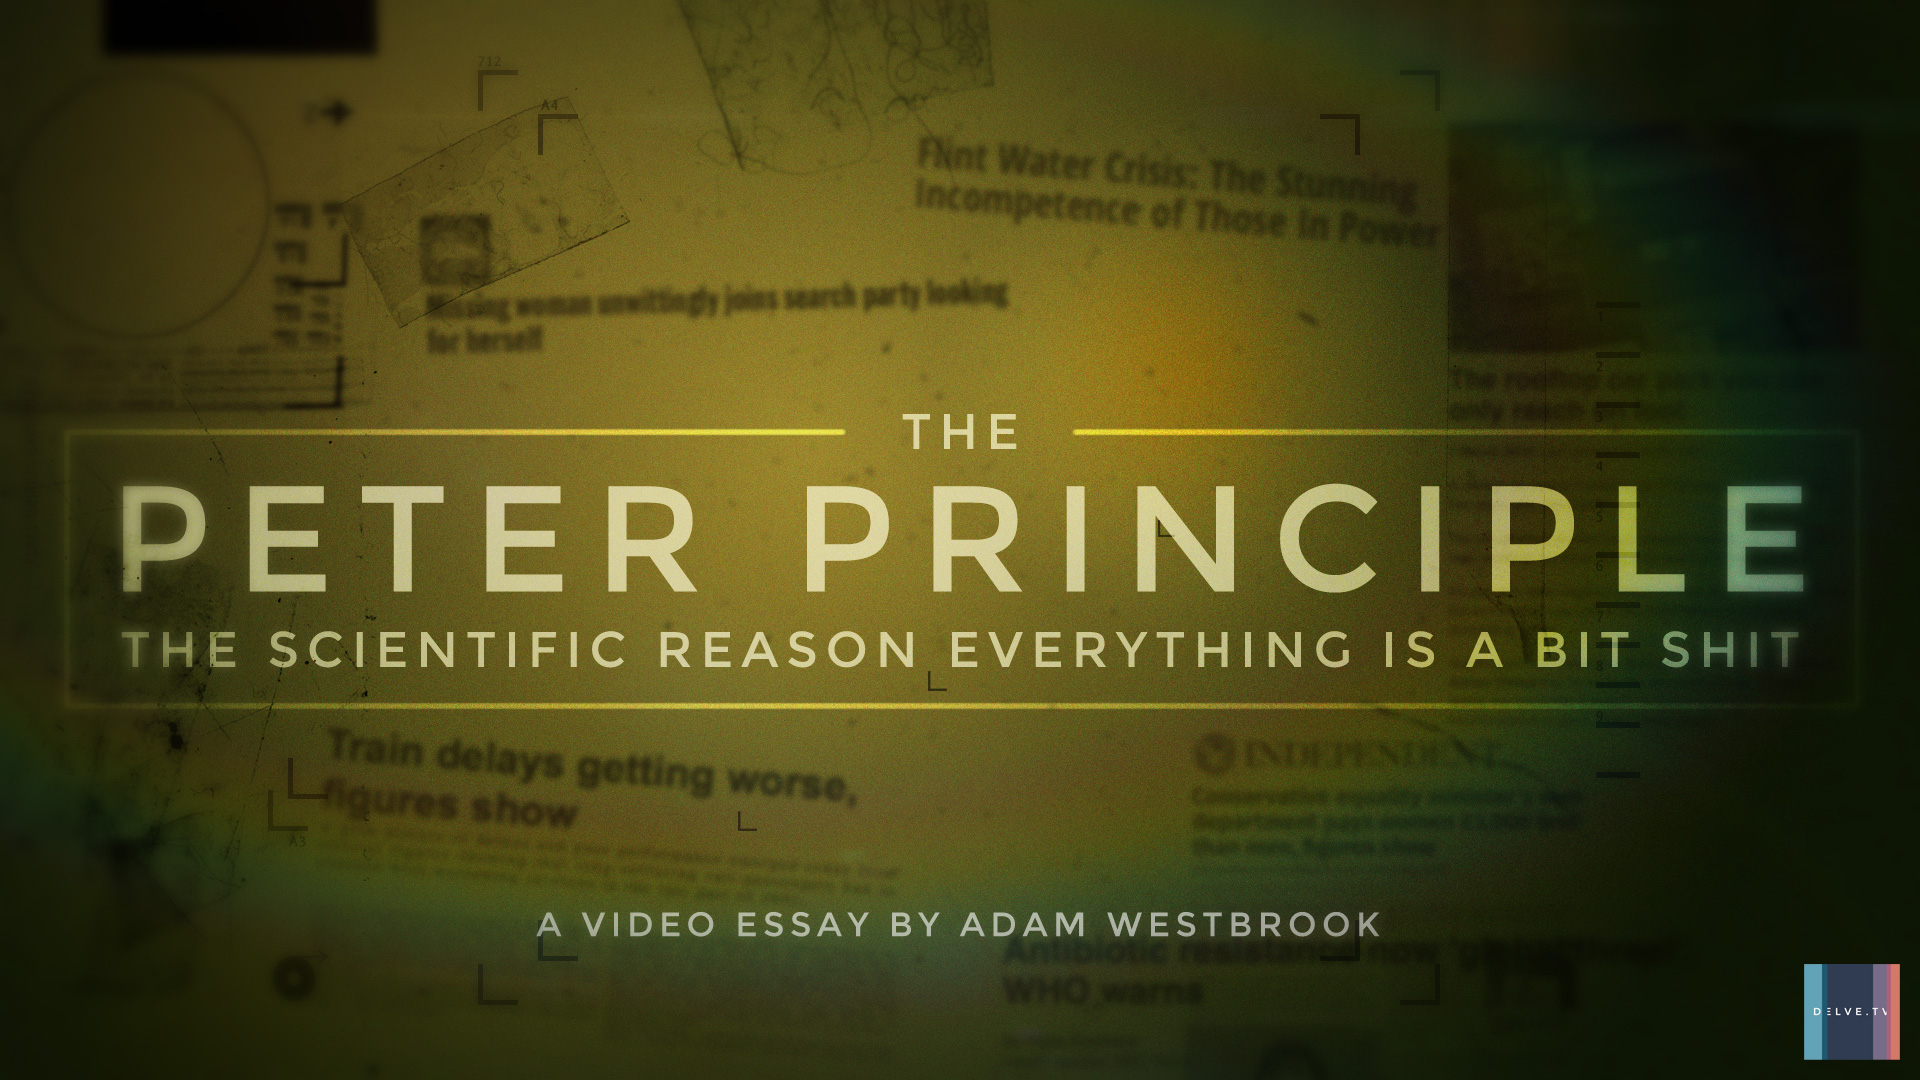 The Peter Principle Video Essay